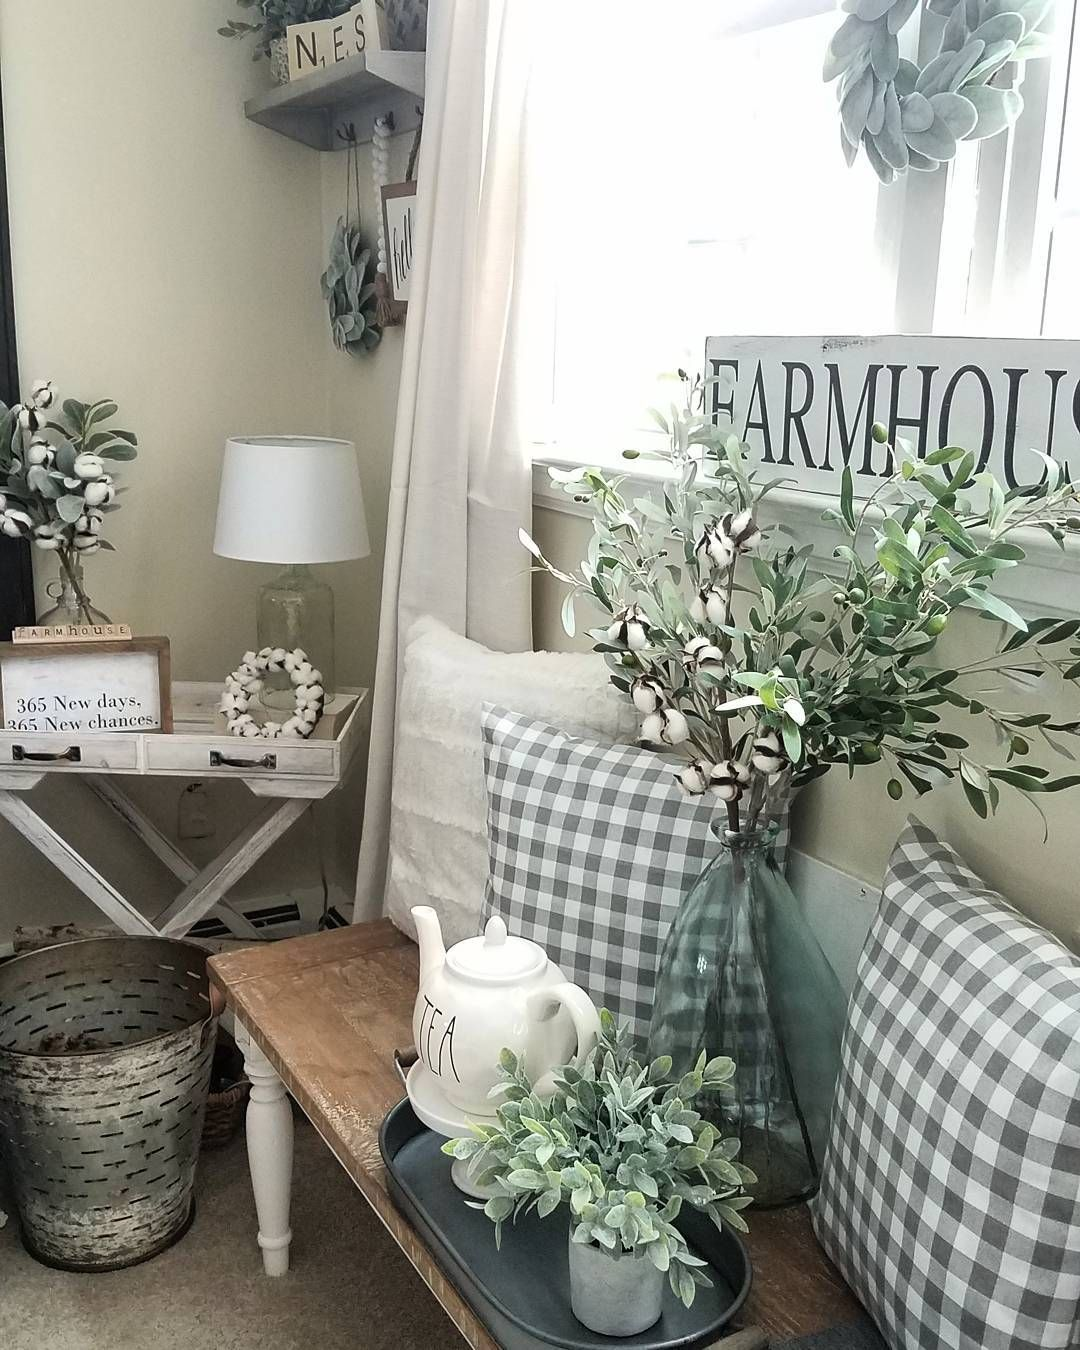 Is Farmhouse Decor Out: I Think This Is Too Much In A Small Space, But Pinning For